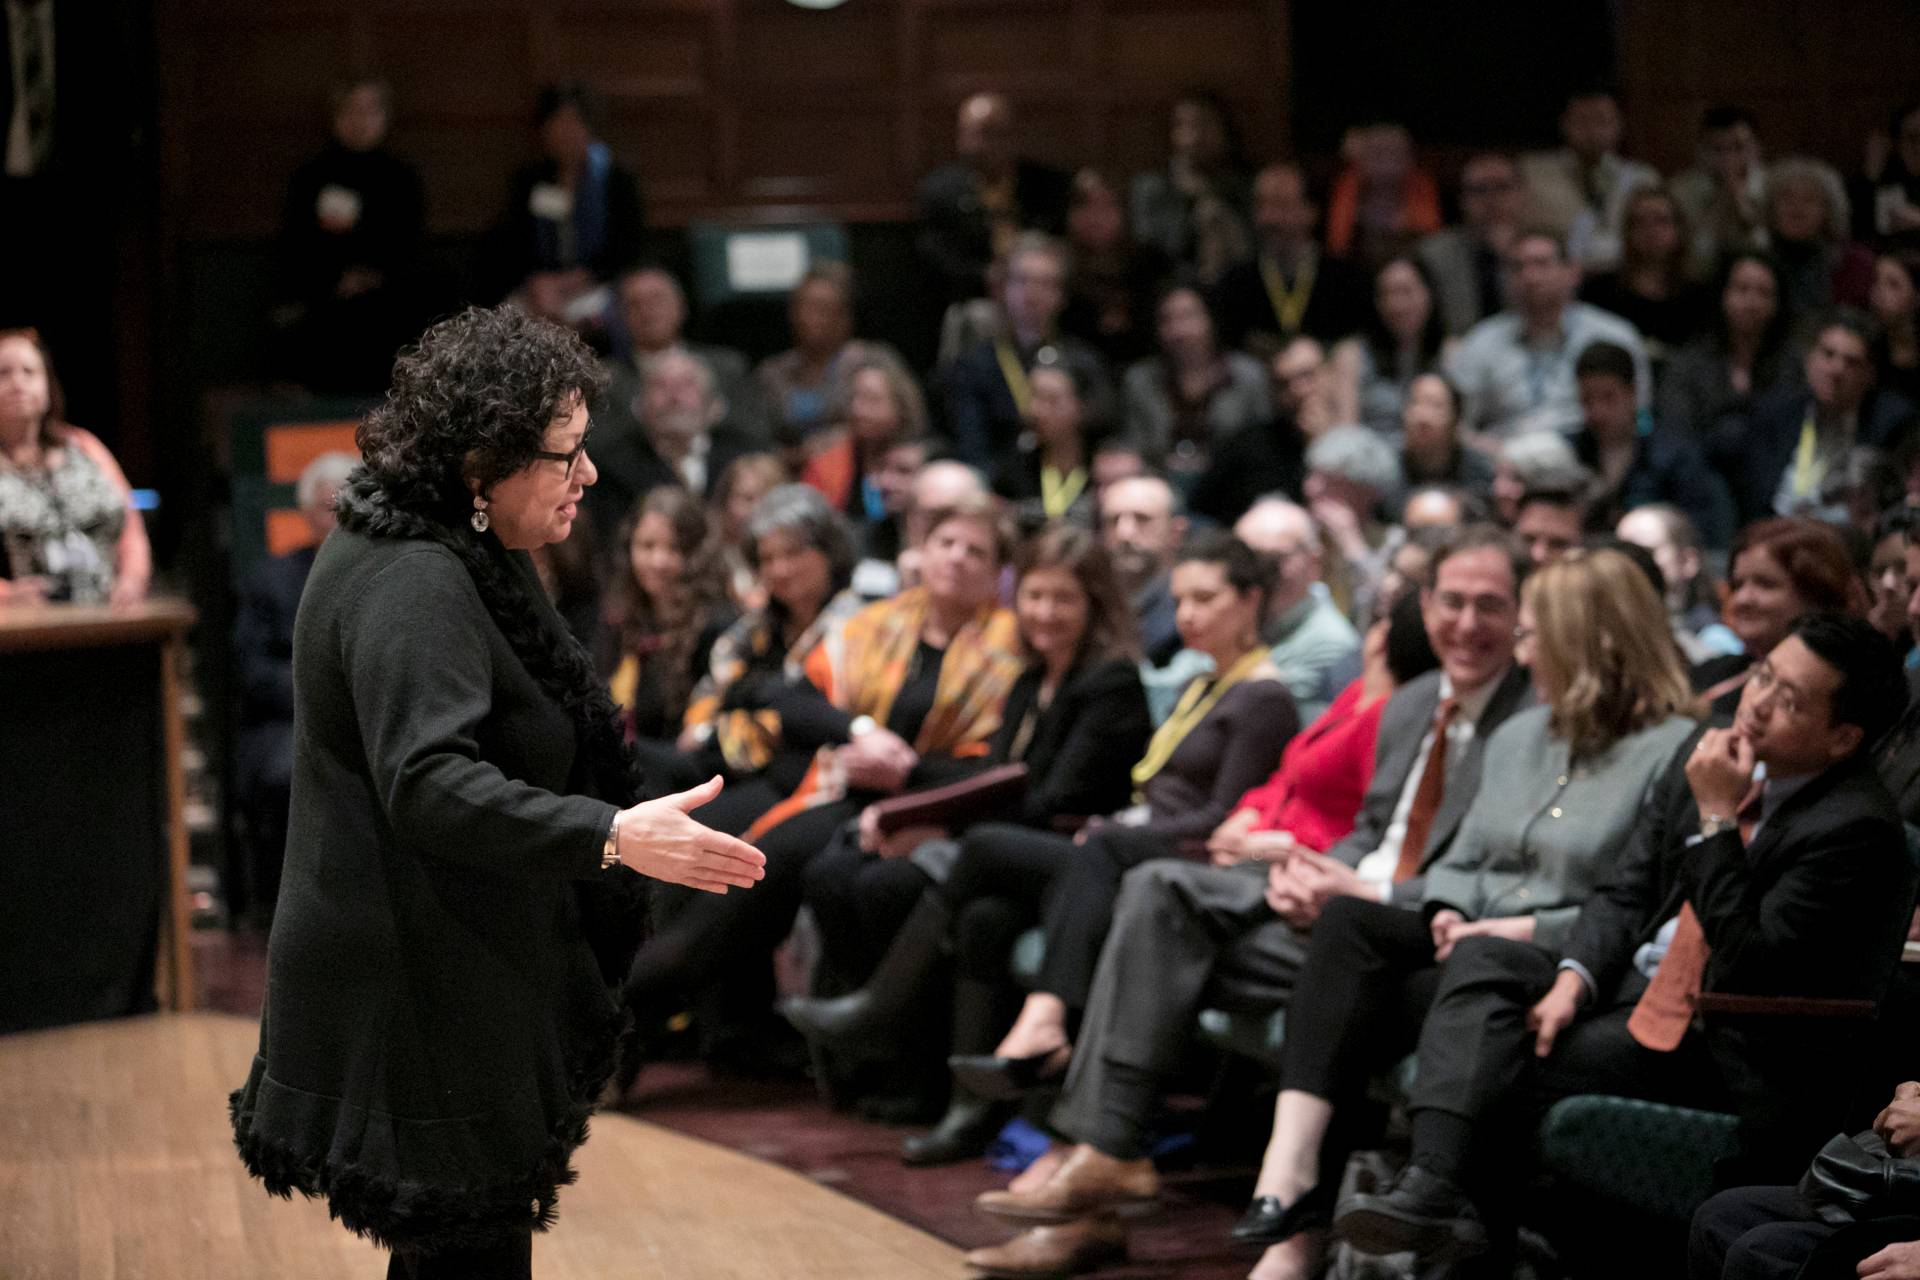 Sonia Sotomayor talks to audience in Alexander Hall